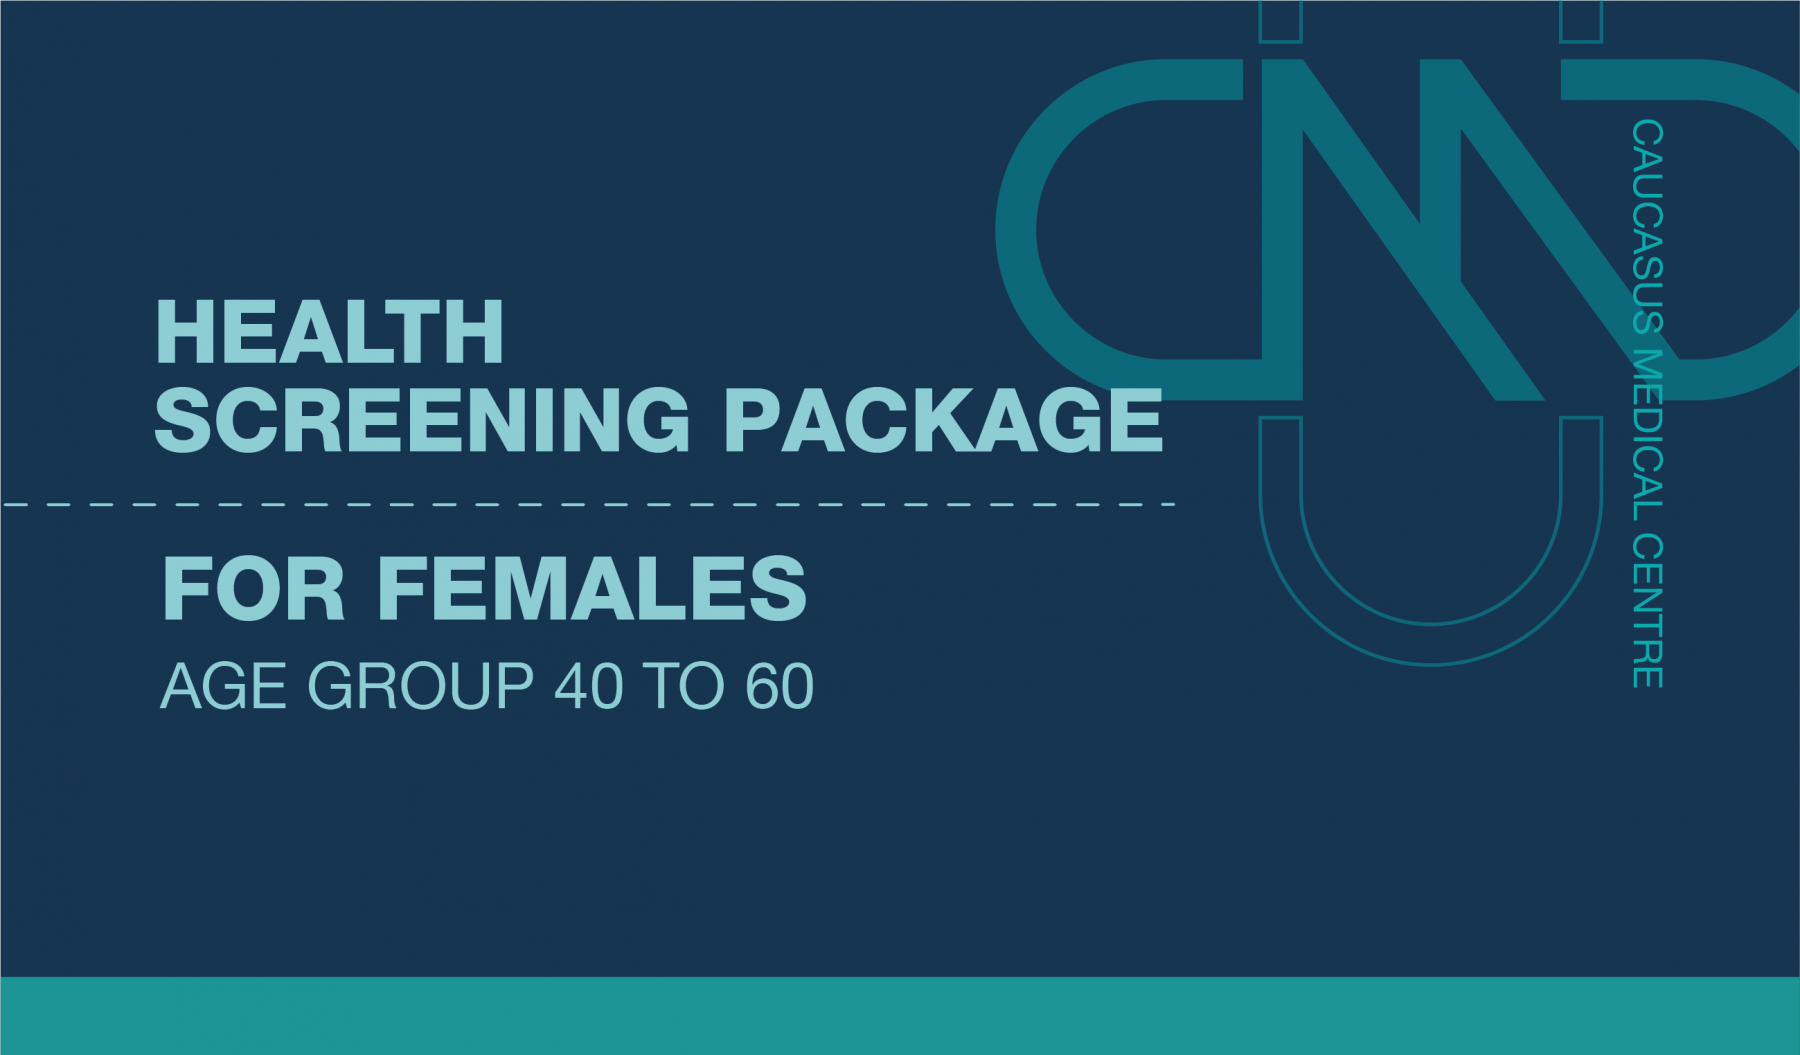 PREMIUM HEALTH SCREENING PACKAGE FOR FEMALES AGE GROUP 40 TO 60